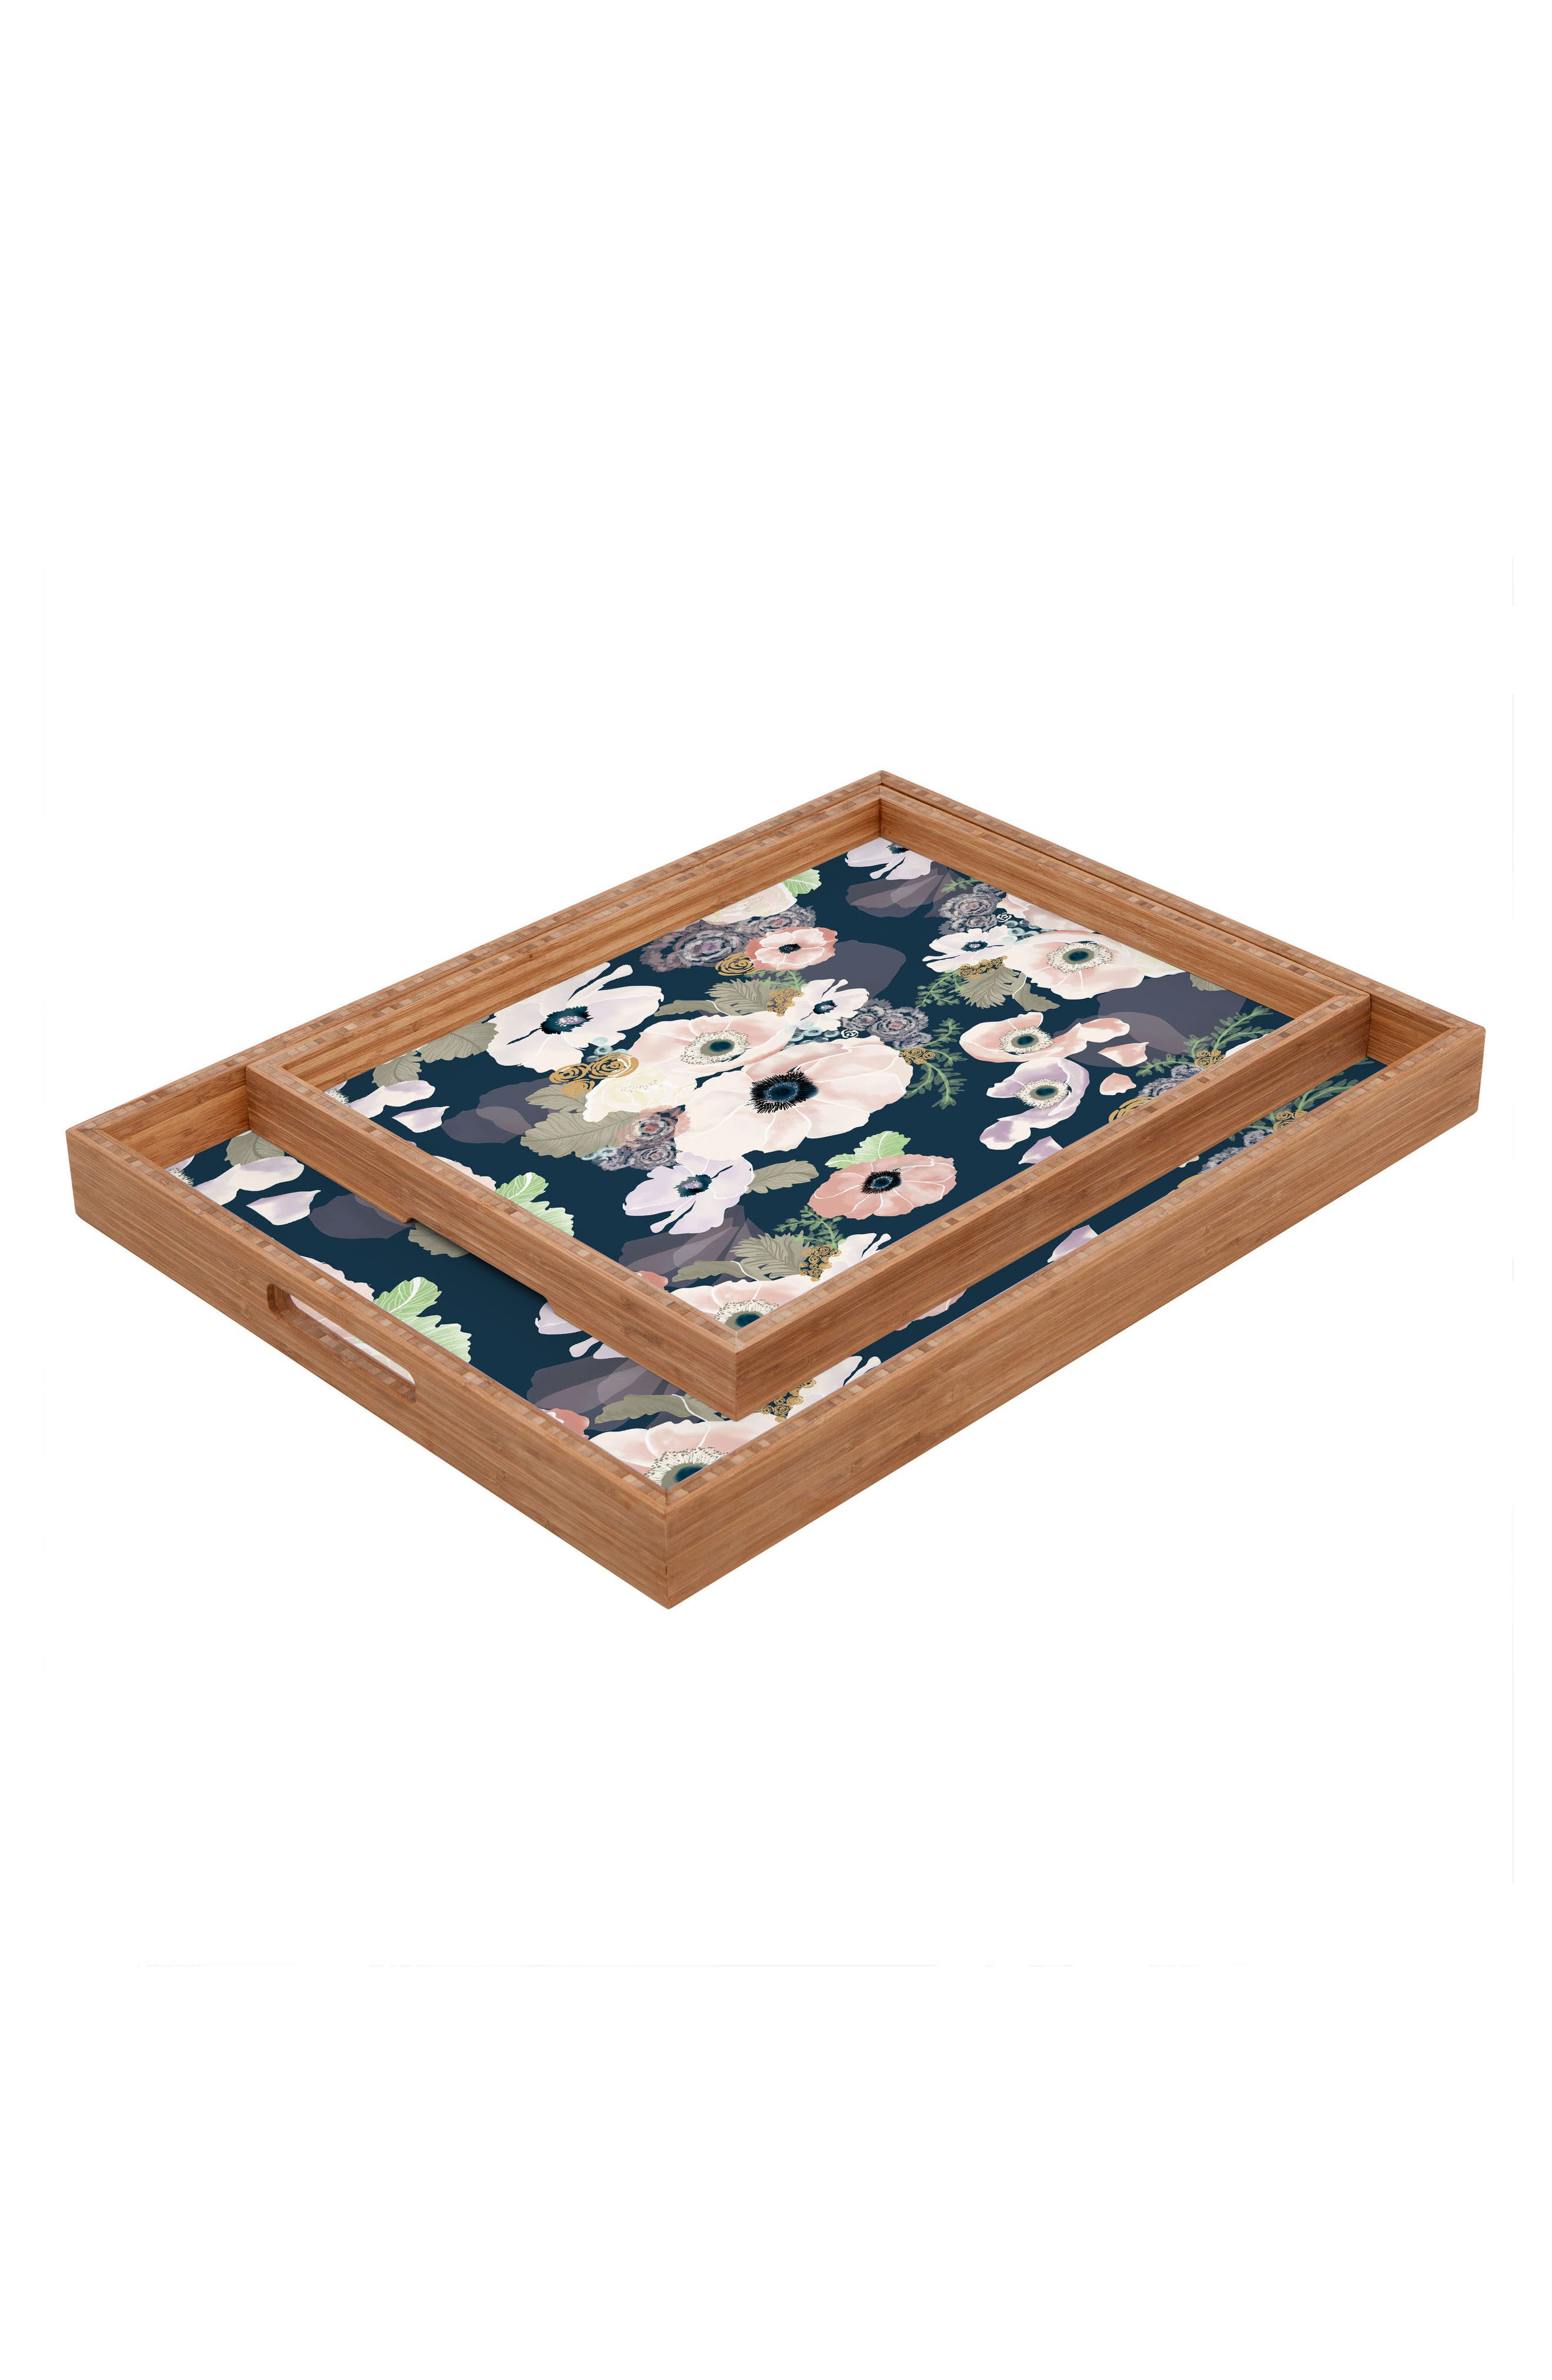 Khristian A Howell Une Femme Tray,                             Alternate thumbnail 2, color,                             Blue